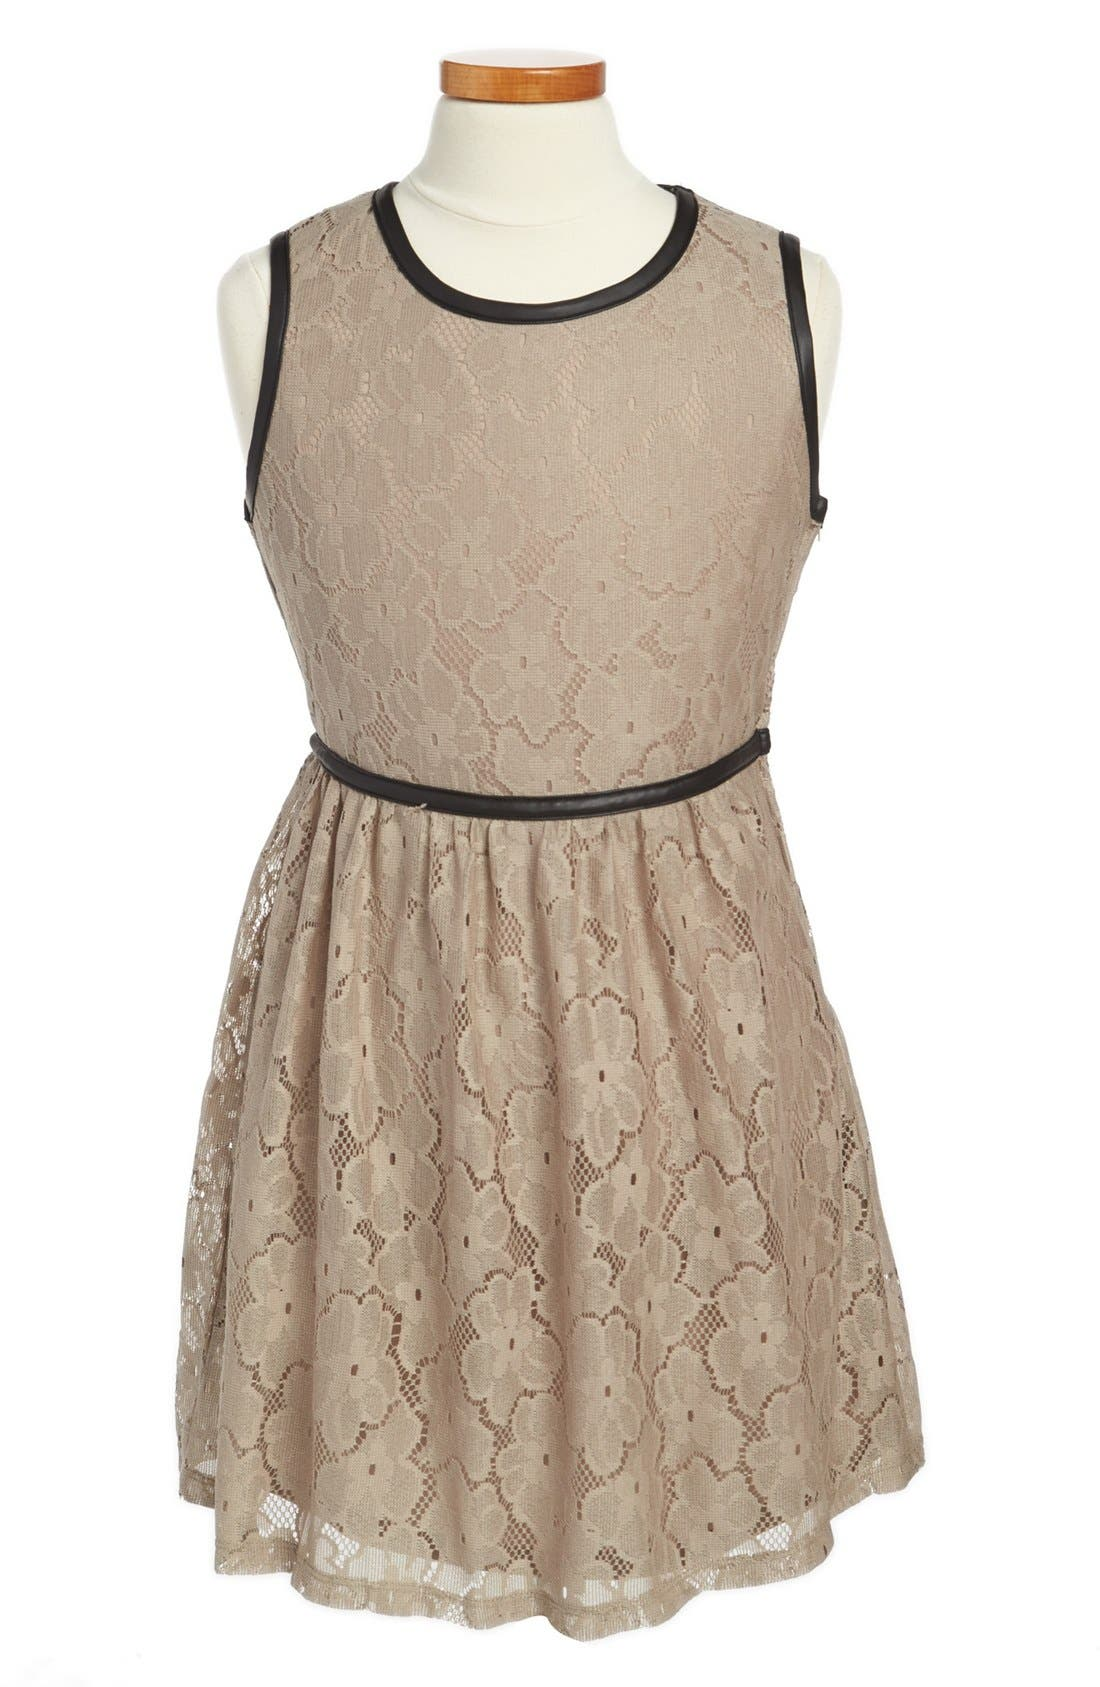 Alternate Image 1 Selected - Mia Chica Lace and Faux Leather Dress (Big Girls)